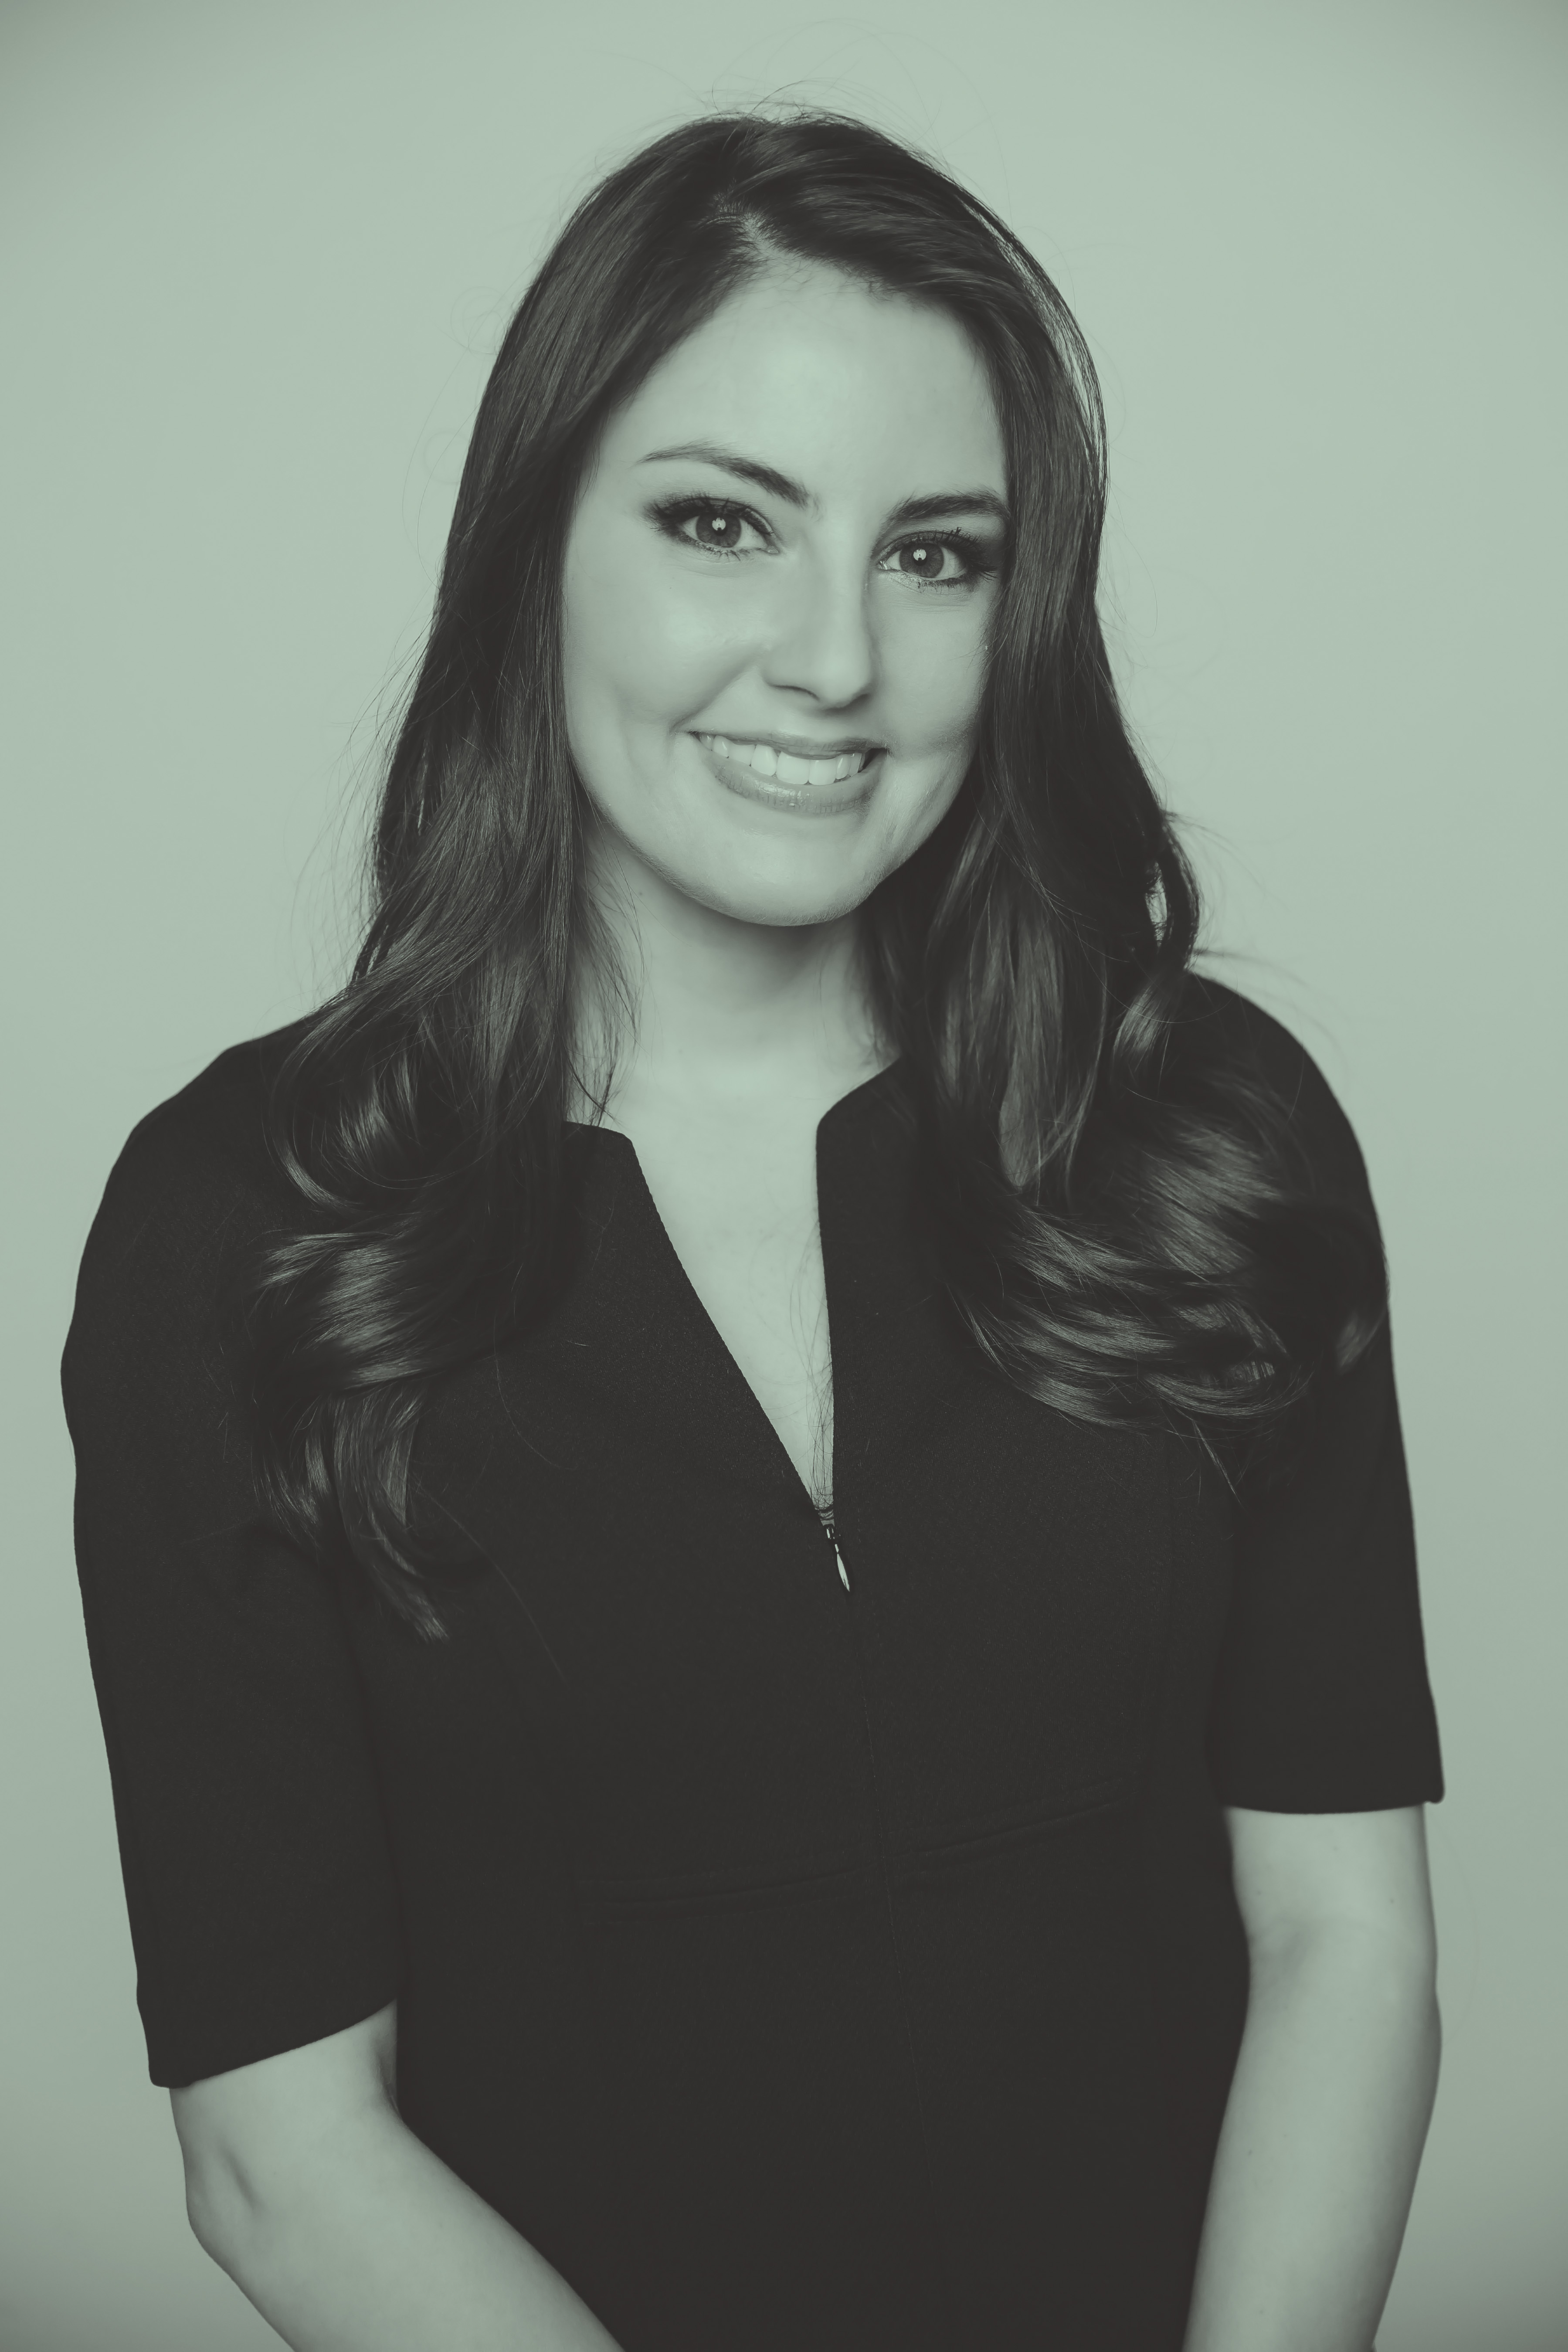 meet daniela pierre-bravo, know your value's millennial contributor